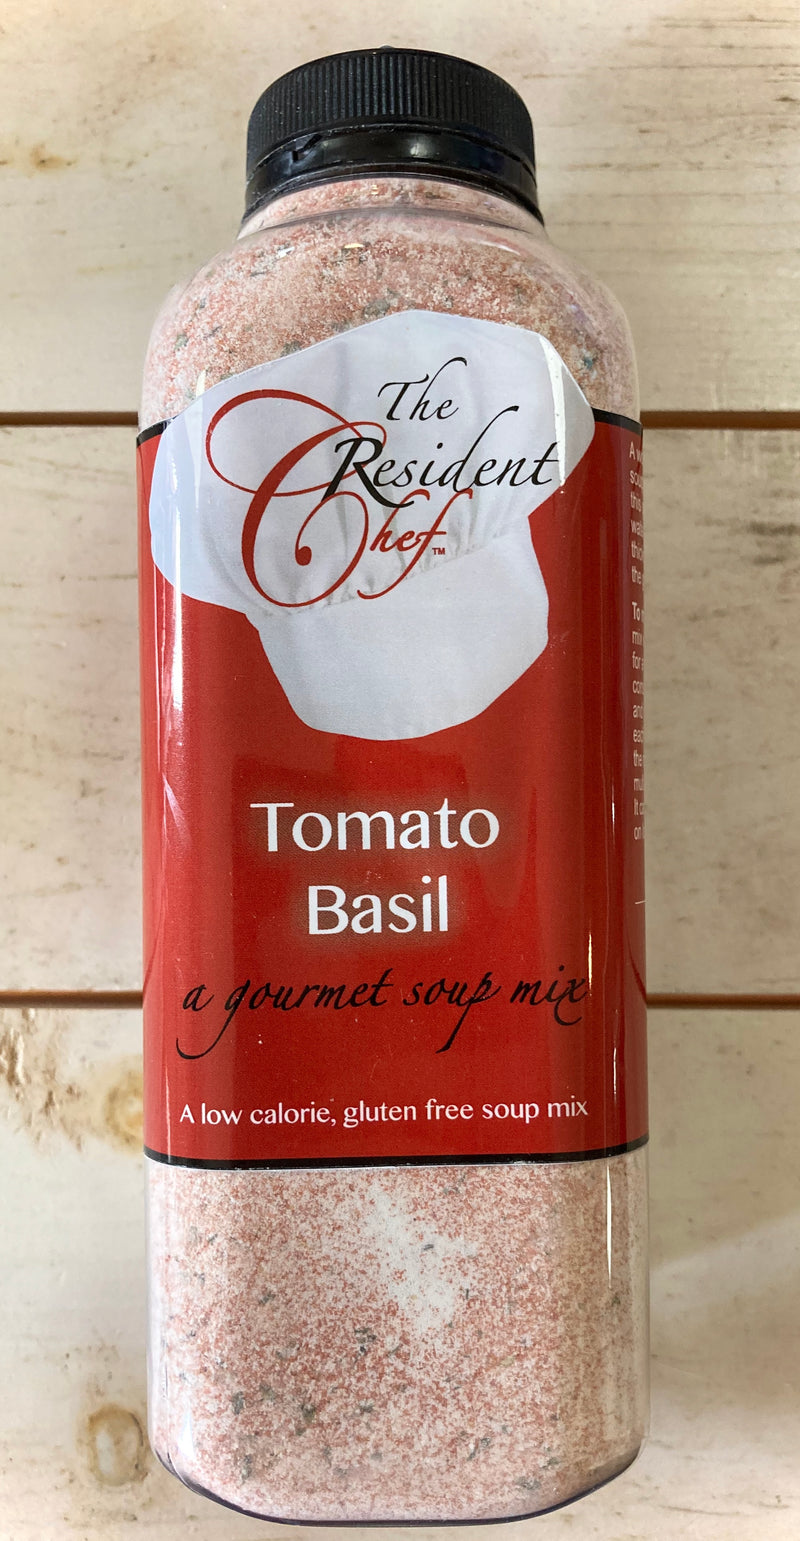 Tomato Basil Soup - Bless UR Heart Boutique